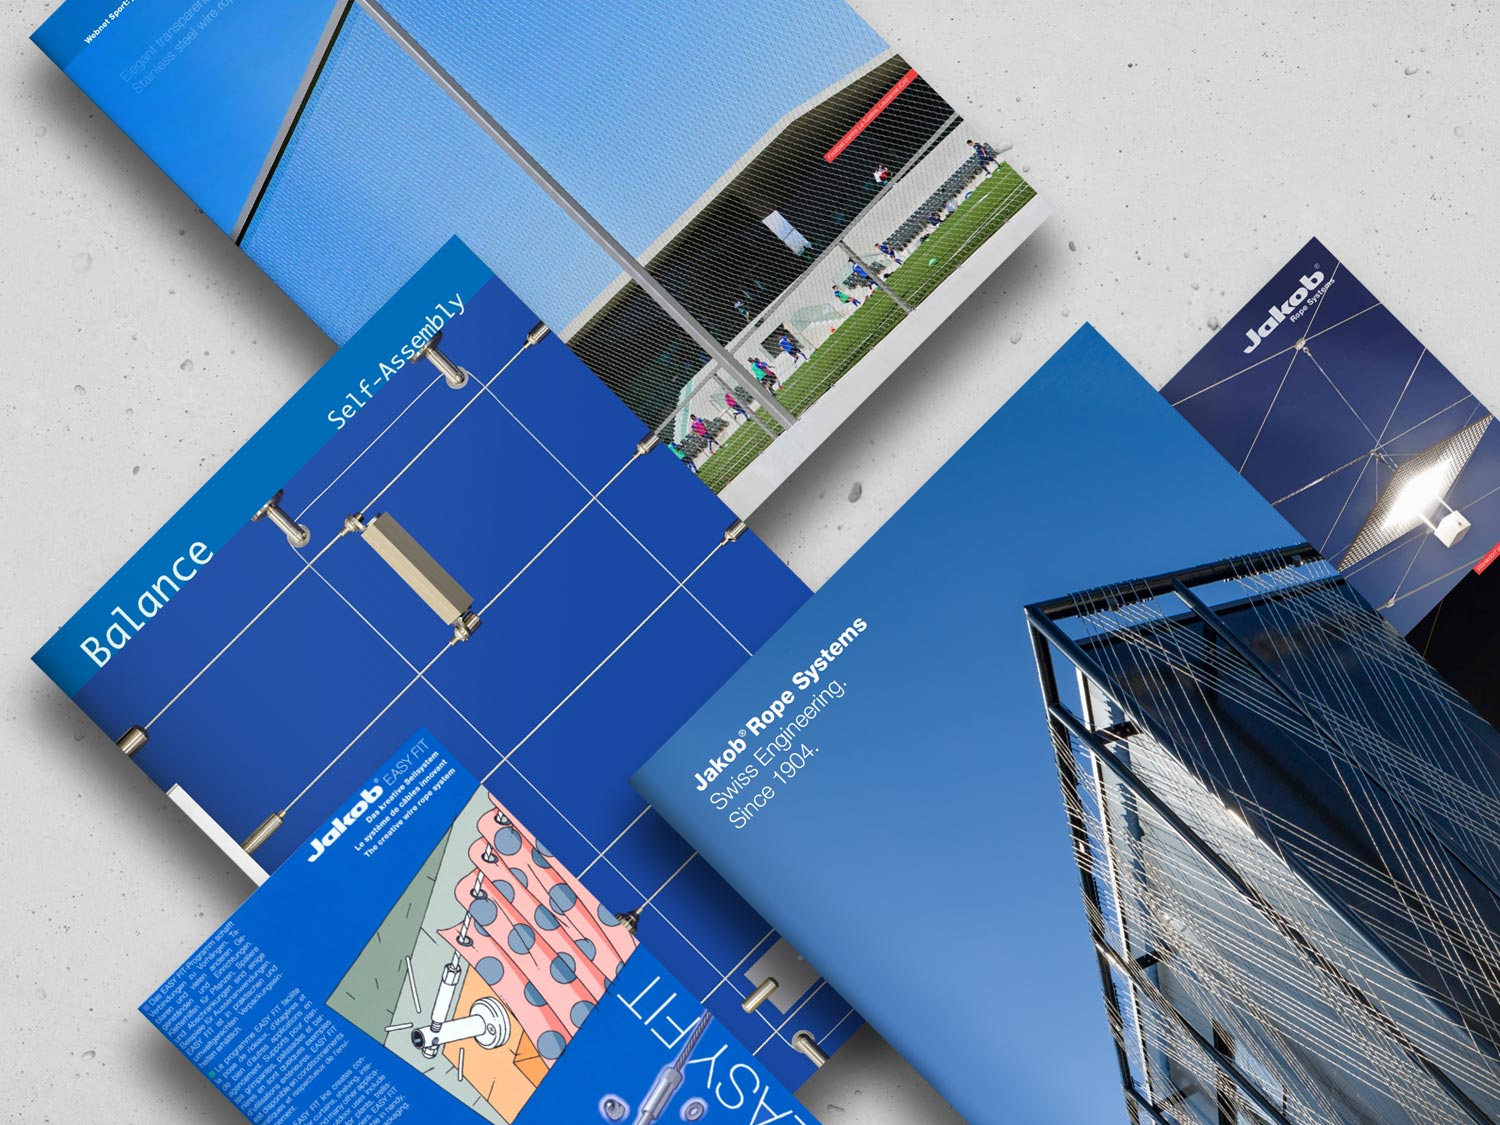 The collection of Jakob Rope Systems brochures